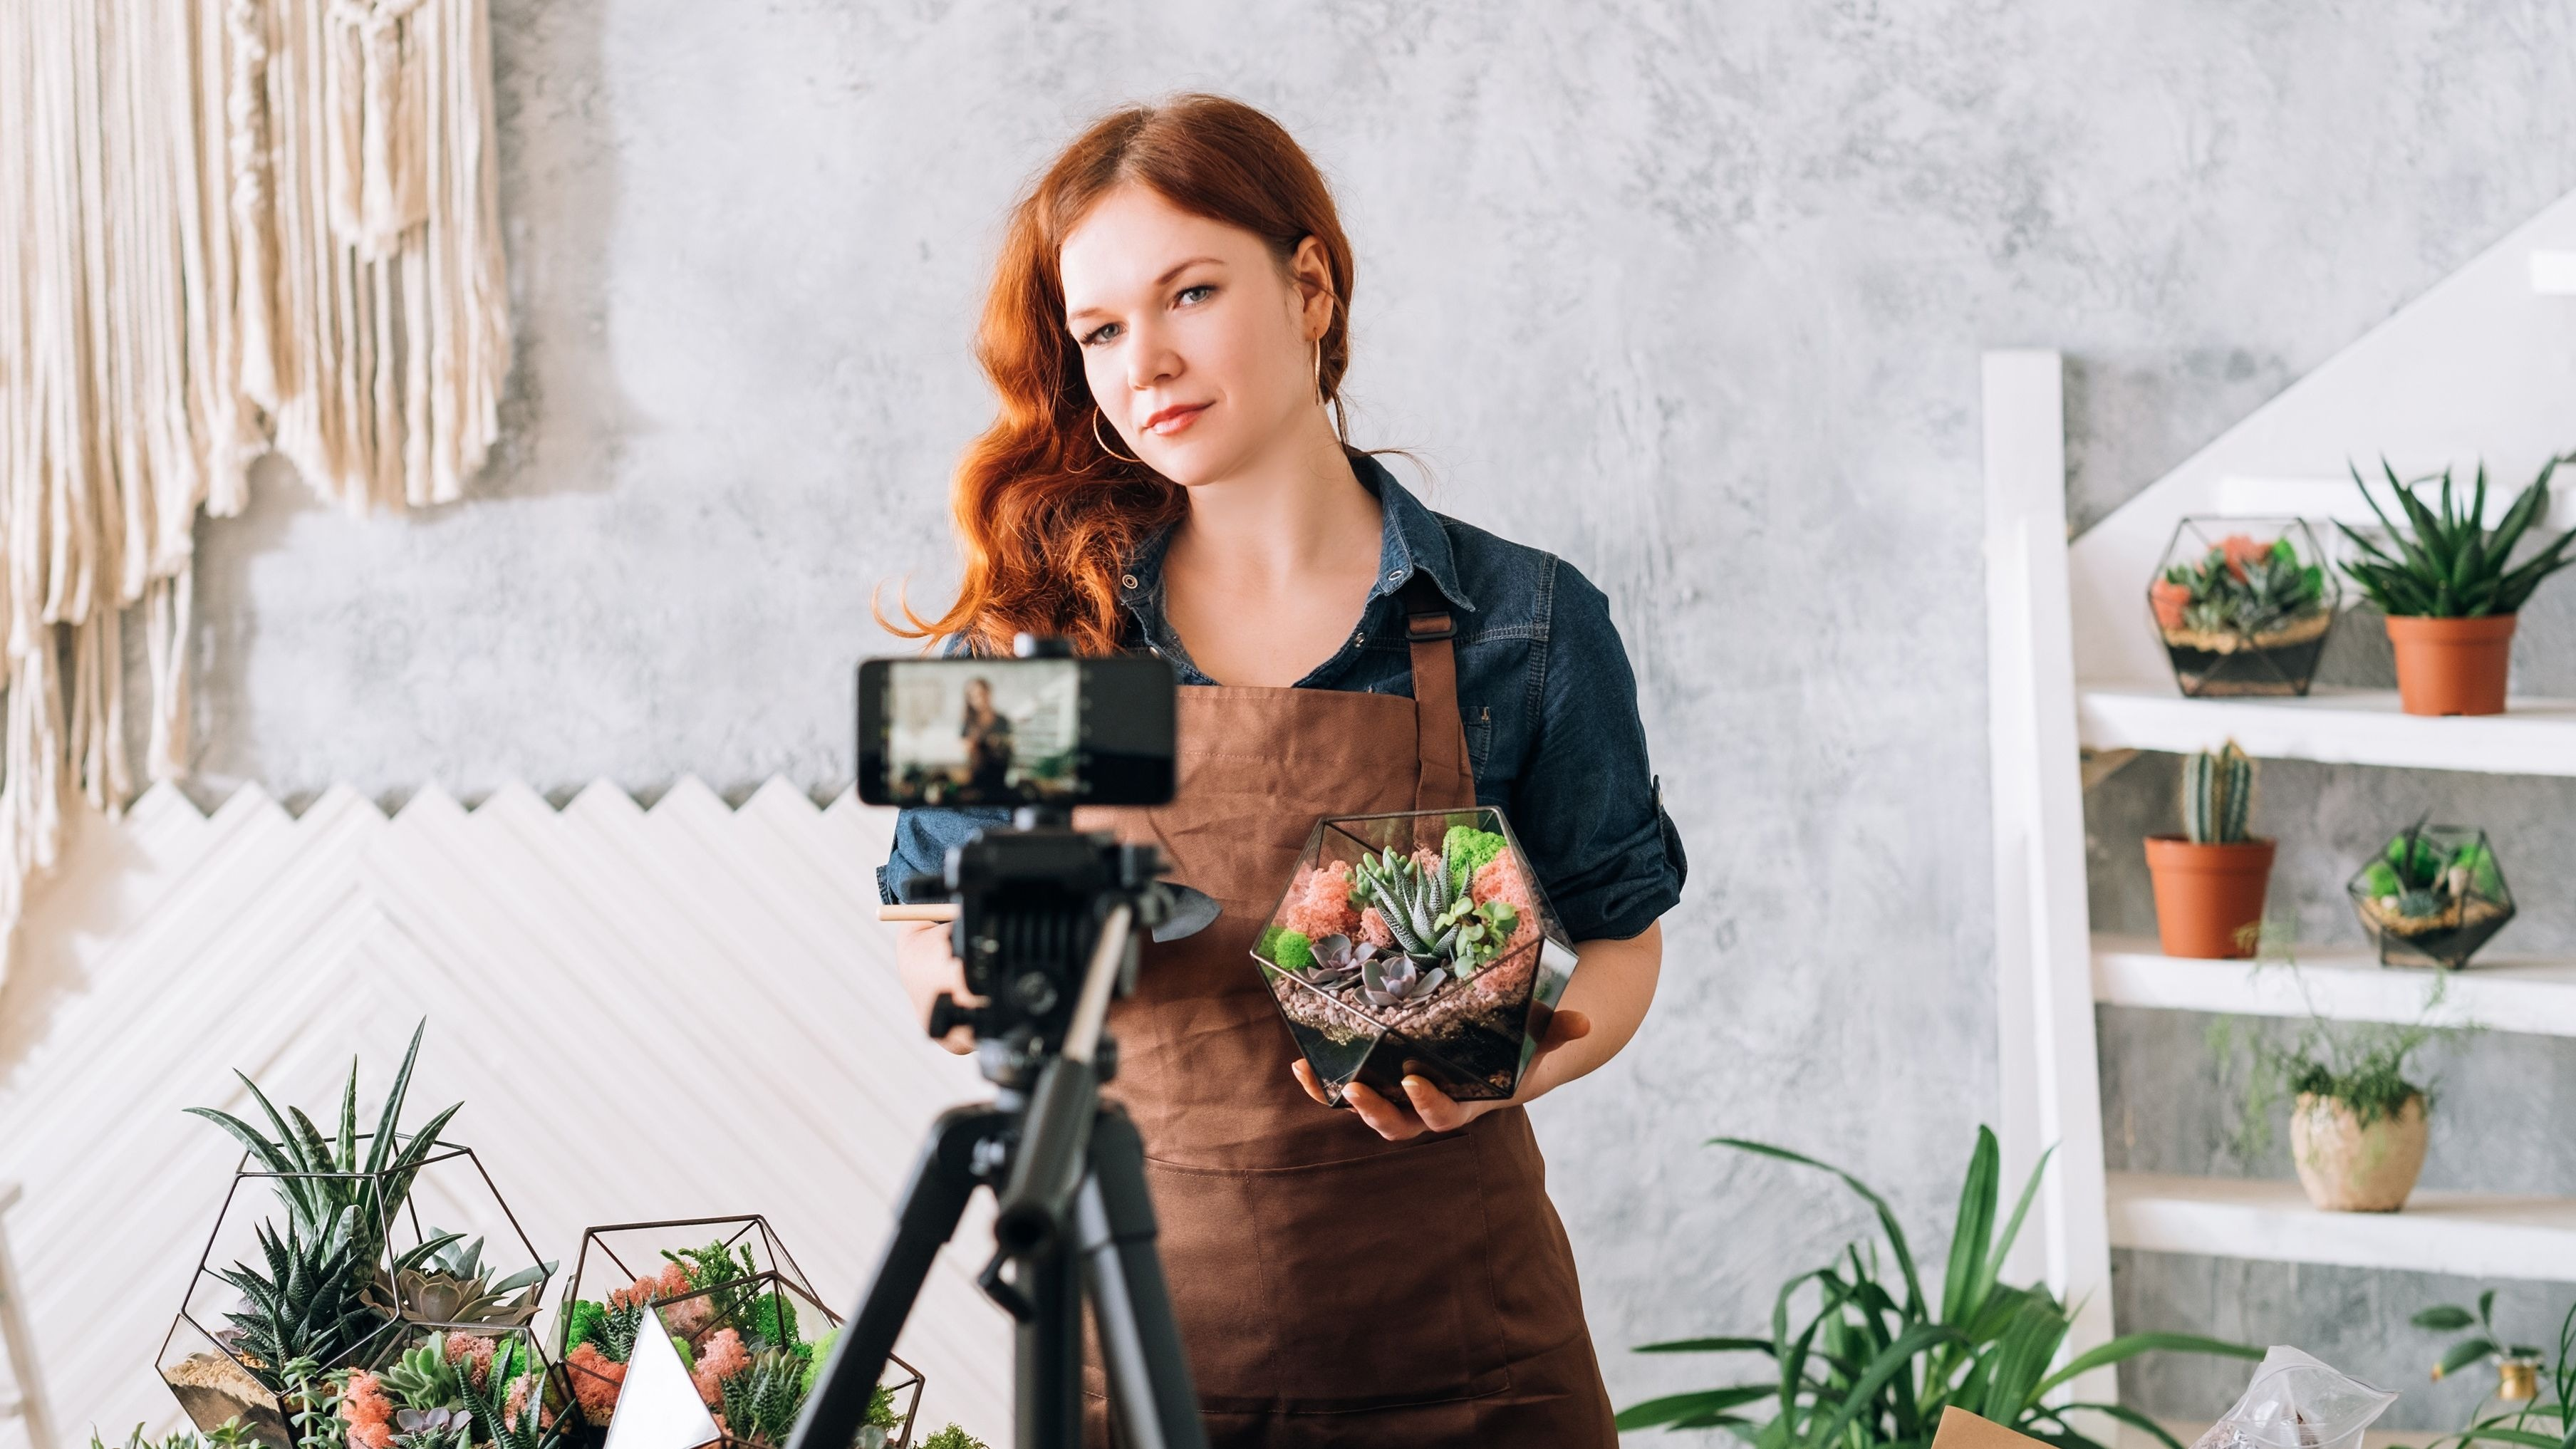 How to Make How To Videos for Your Business